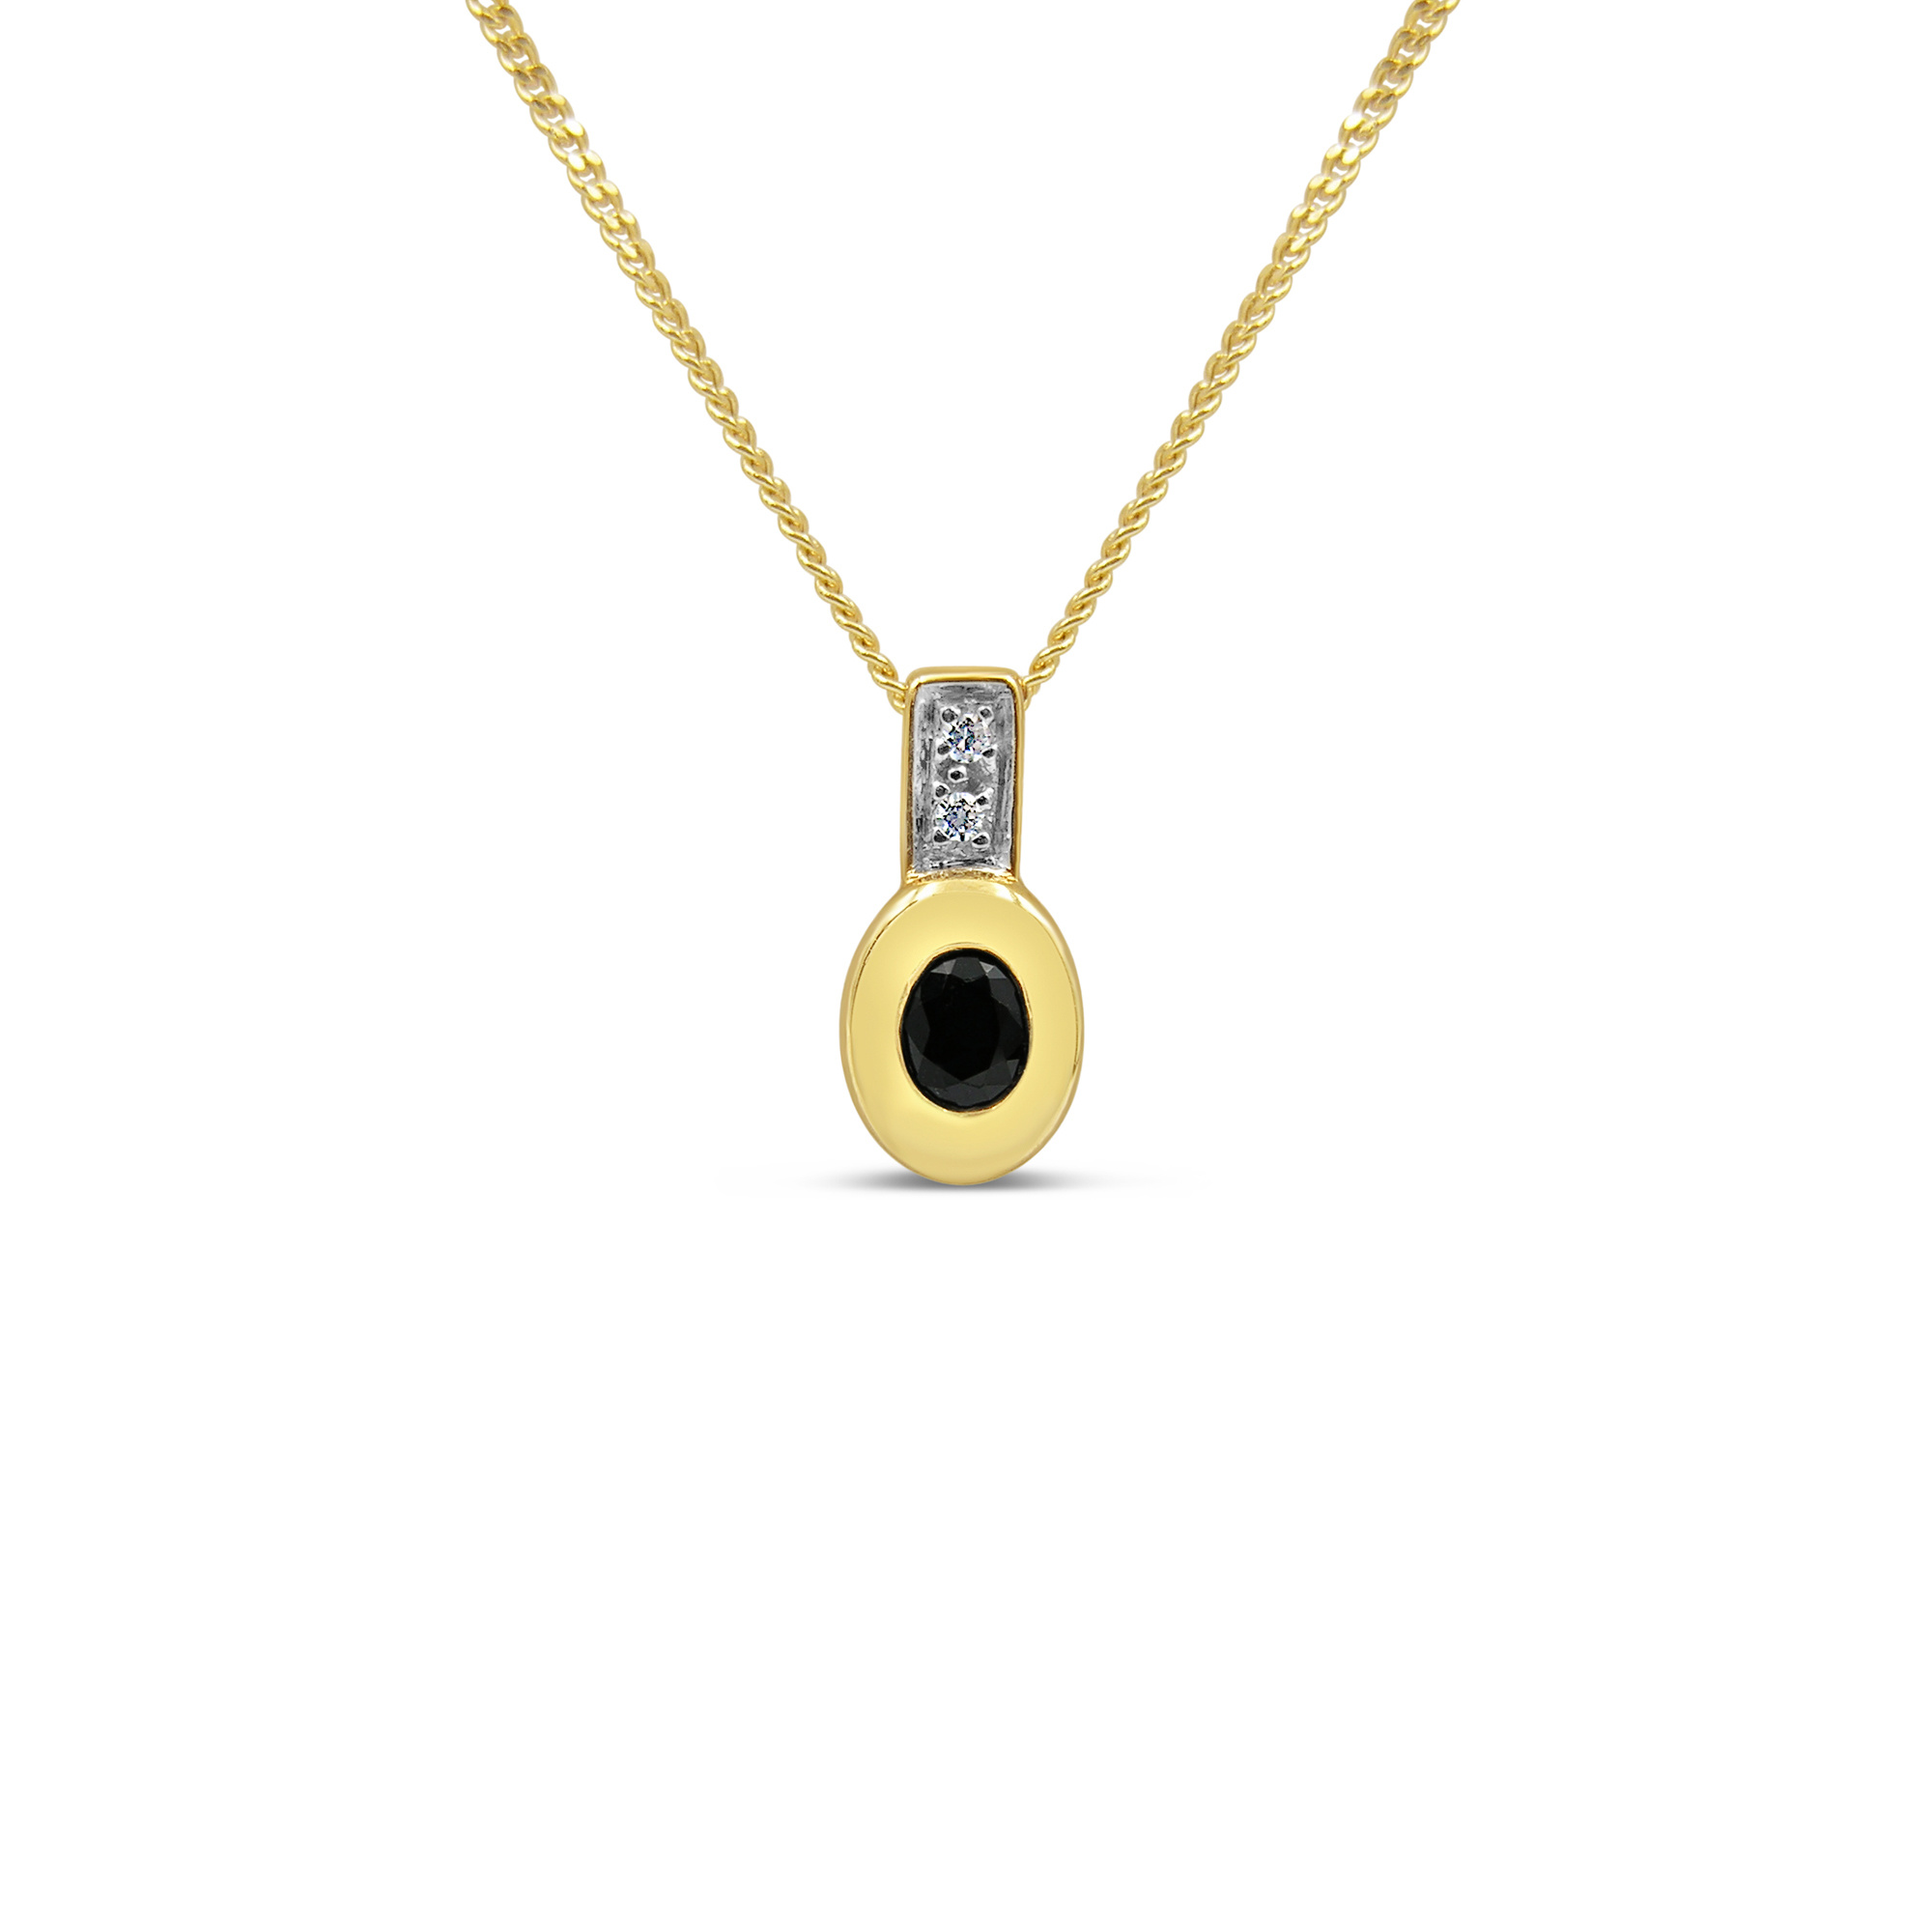 18kt yellow gold pendant with 0.10 ct sapphire & 0.02 ct diamonds